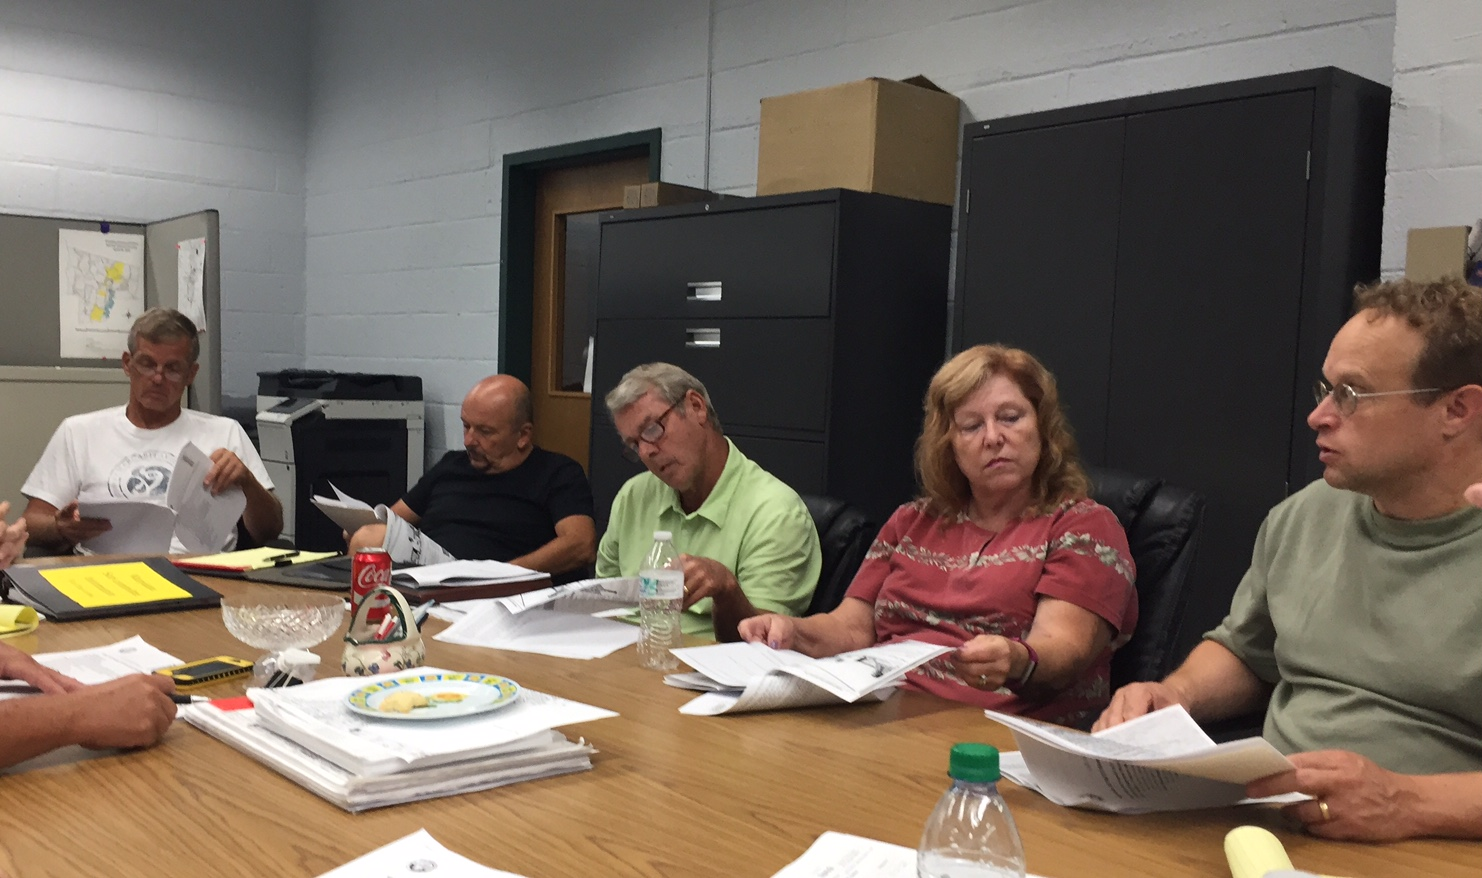 Lake Management committee discusses harbormaster position